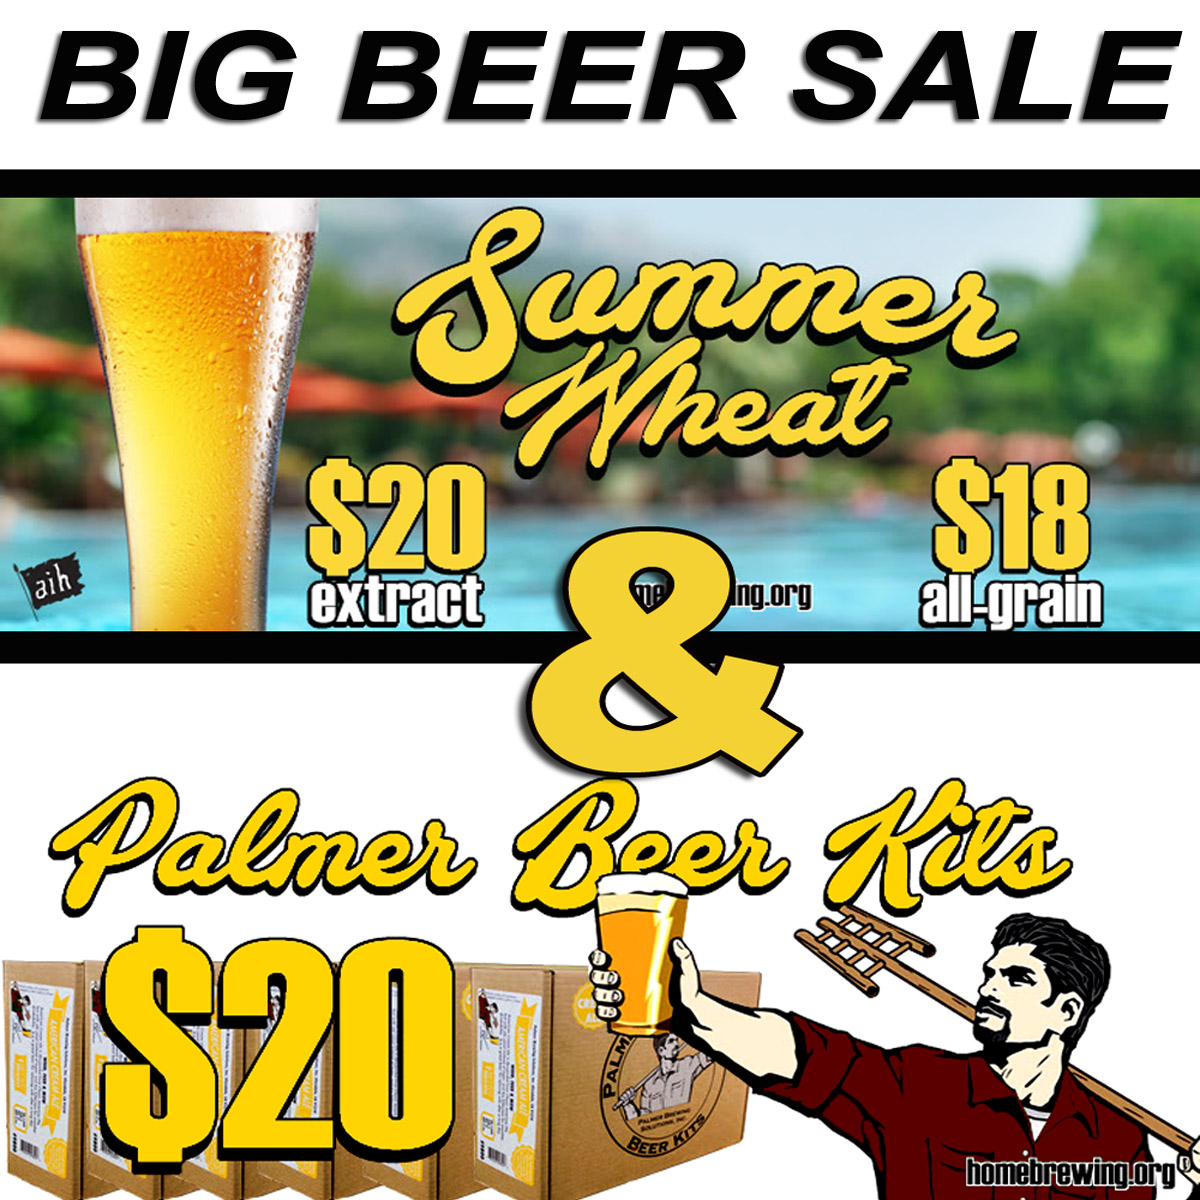 Big Beer Sale - Palmer Homebrewing Beer Kits For Just $20 Sale